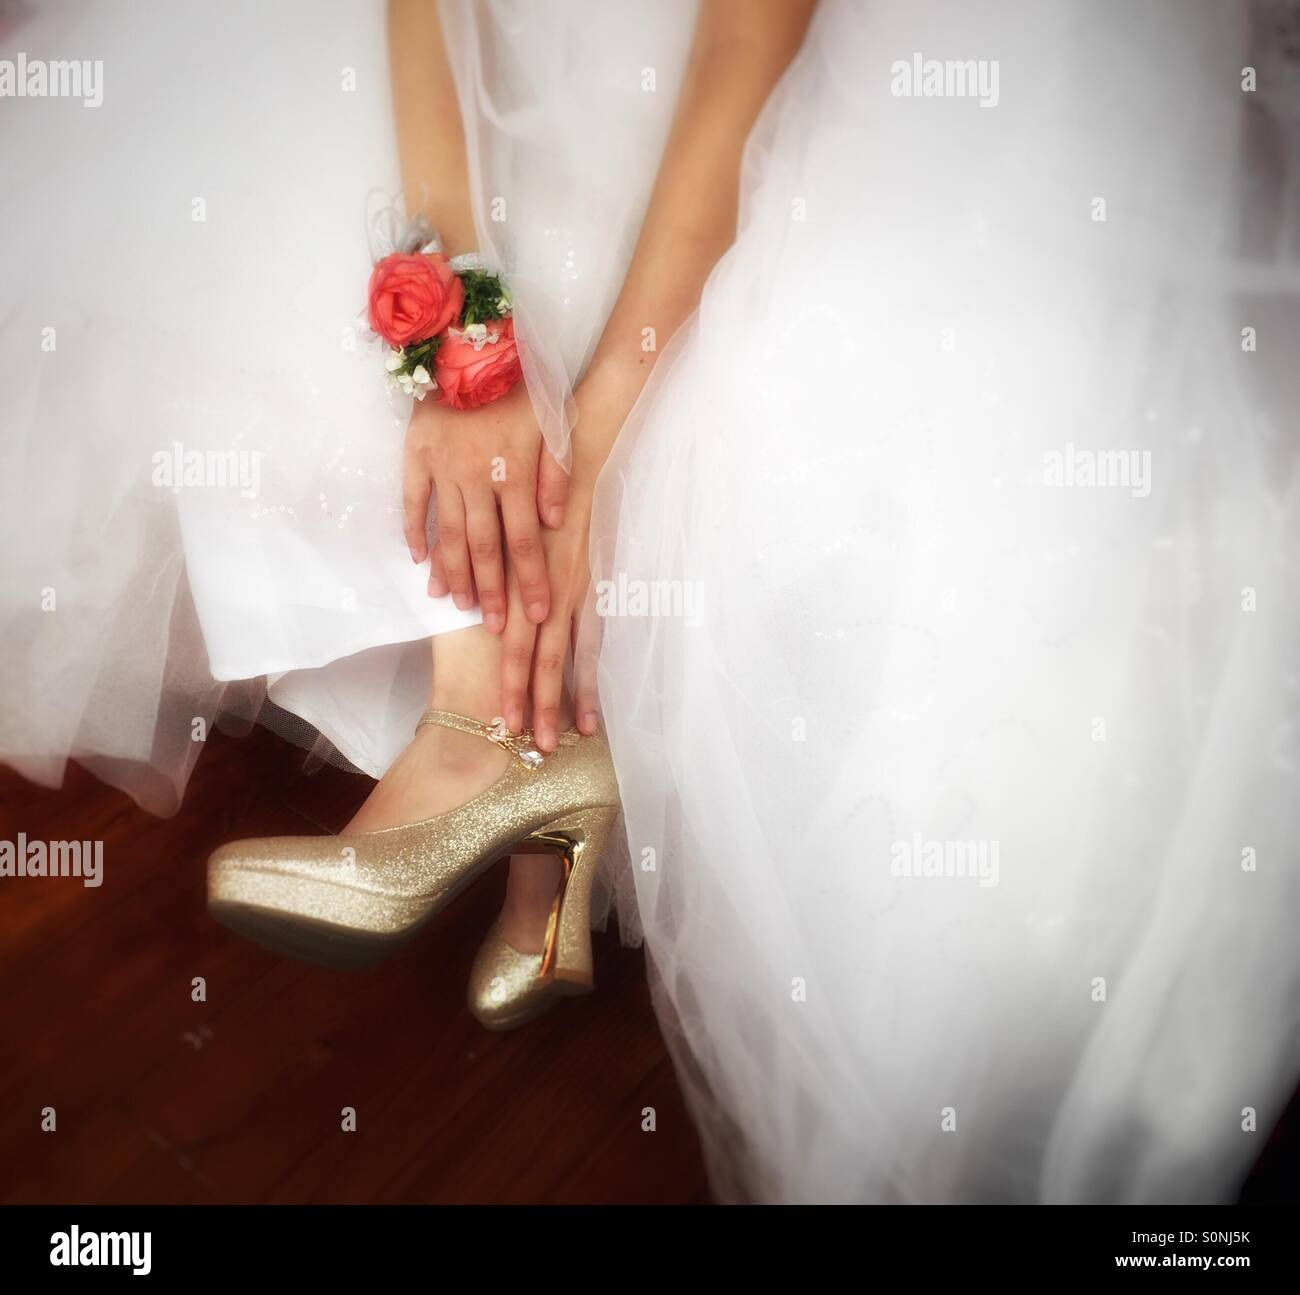 Bride shoes wedding day Stock Photo